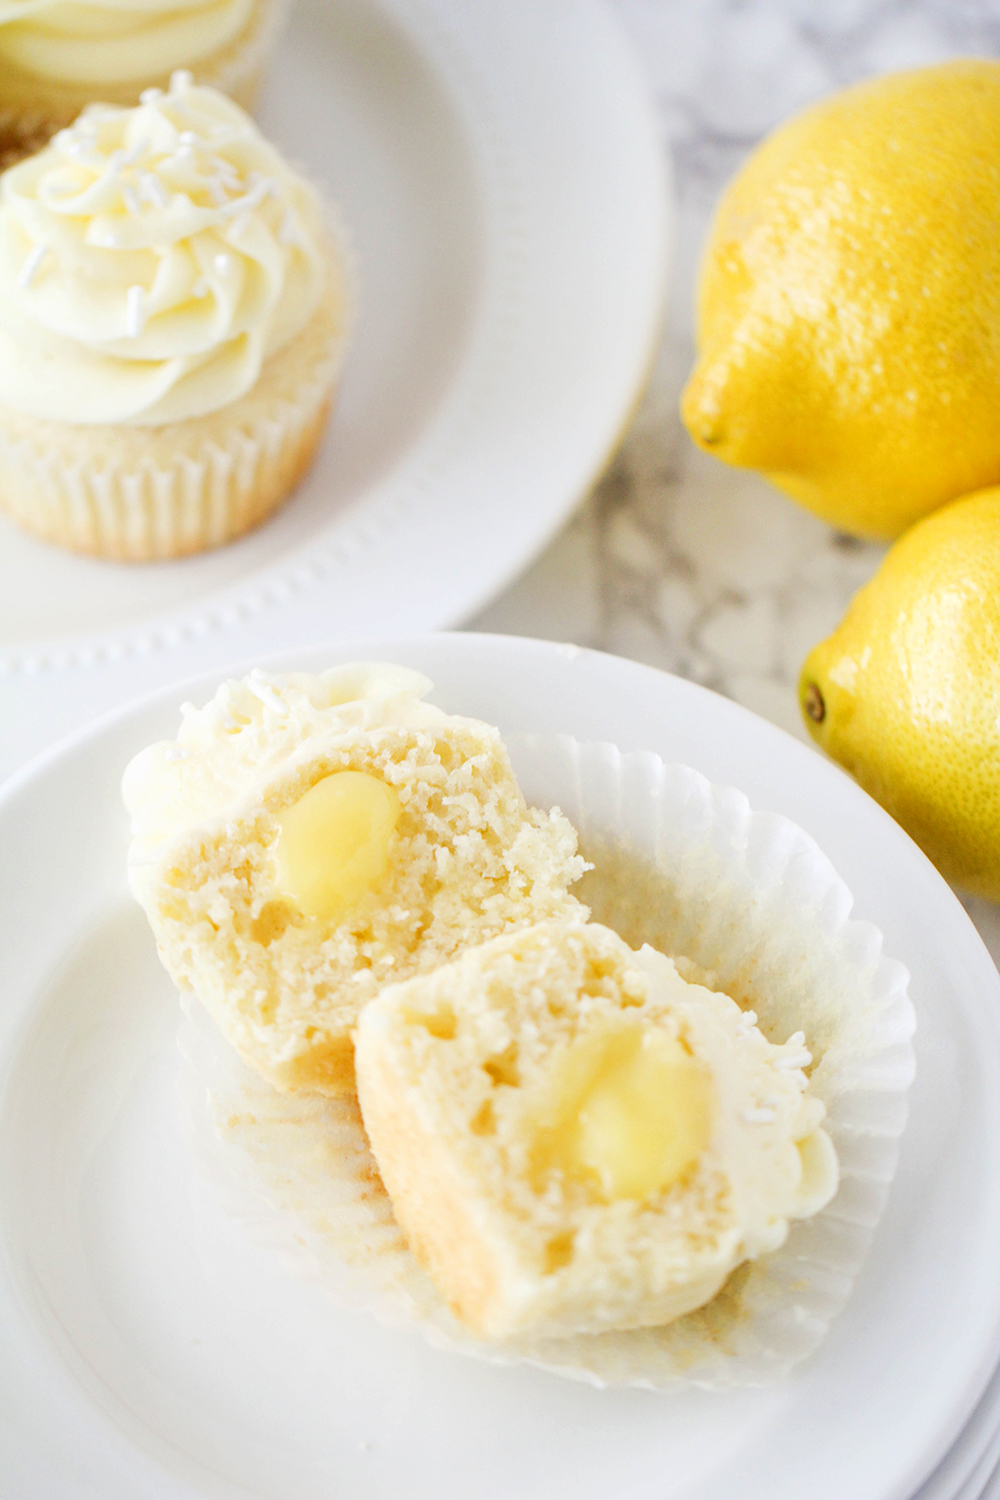 These lemon curd cupcakes are the perfect balance of sweet and tart, and so delicious!